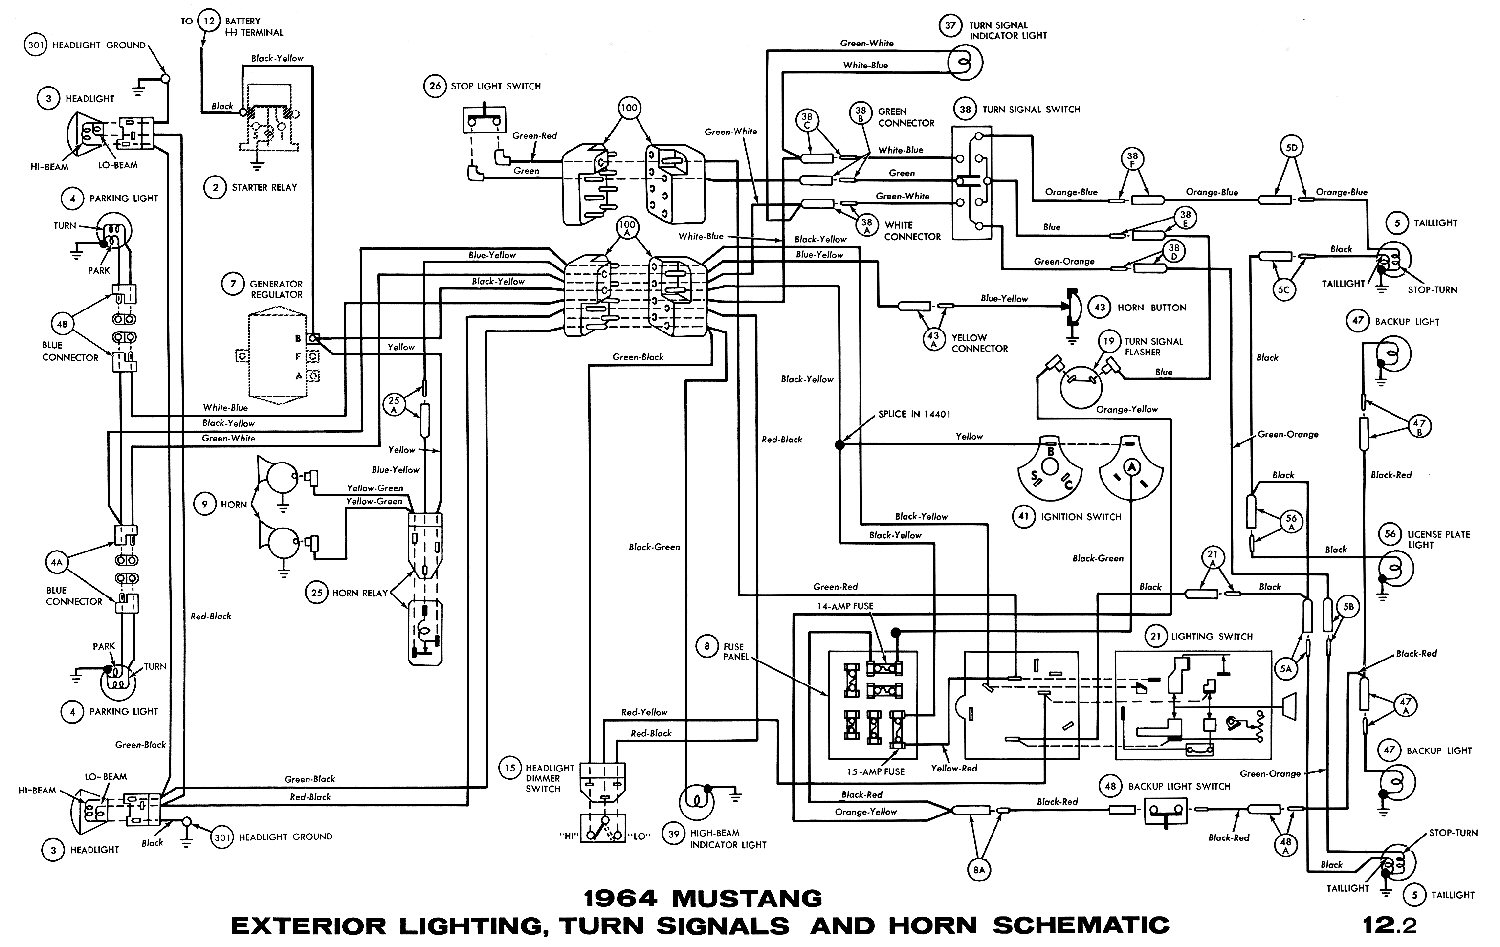 1968 mustang horn wiring wiring diagram rh blaknwyt co 1965 mustang wiring diagrams electrical schematics 1965 mustang wiring diagrams electrical schematics